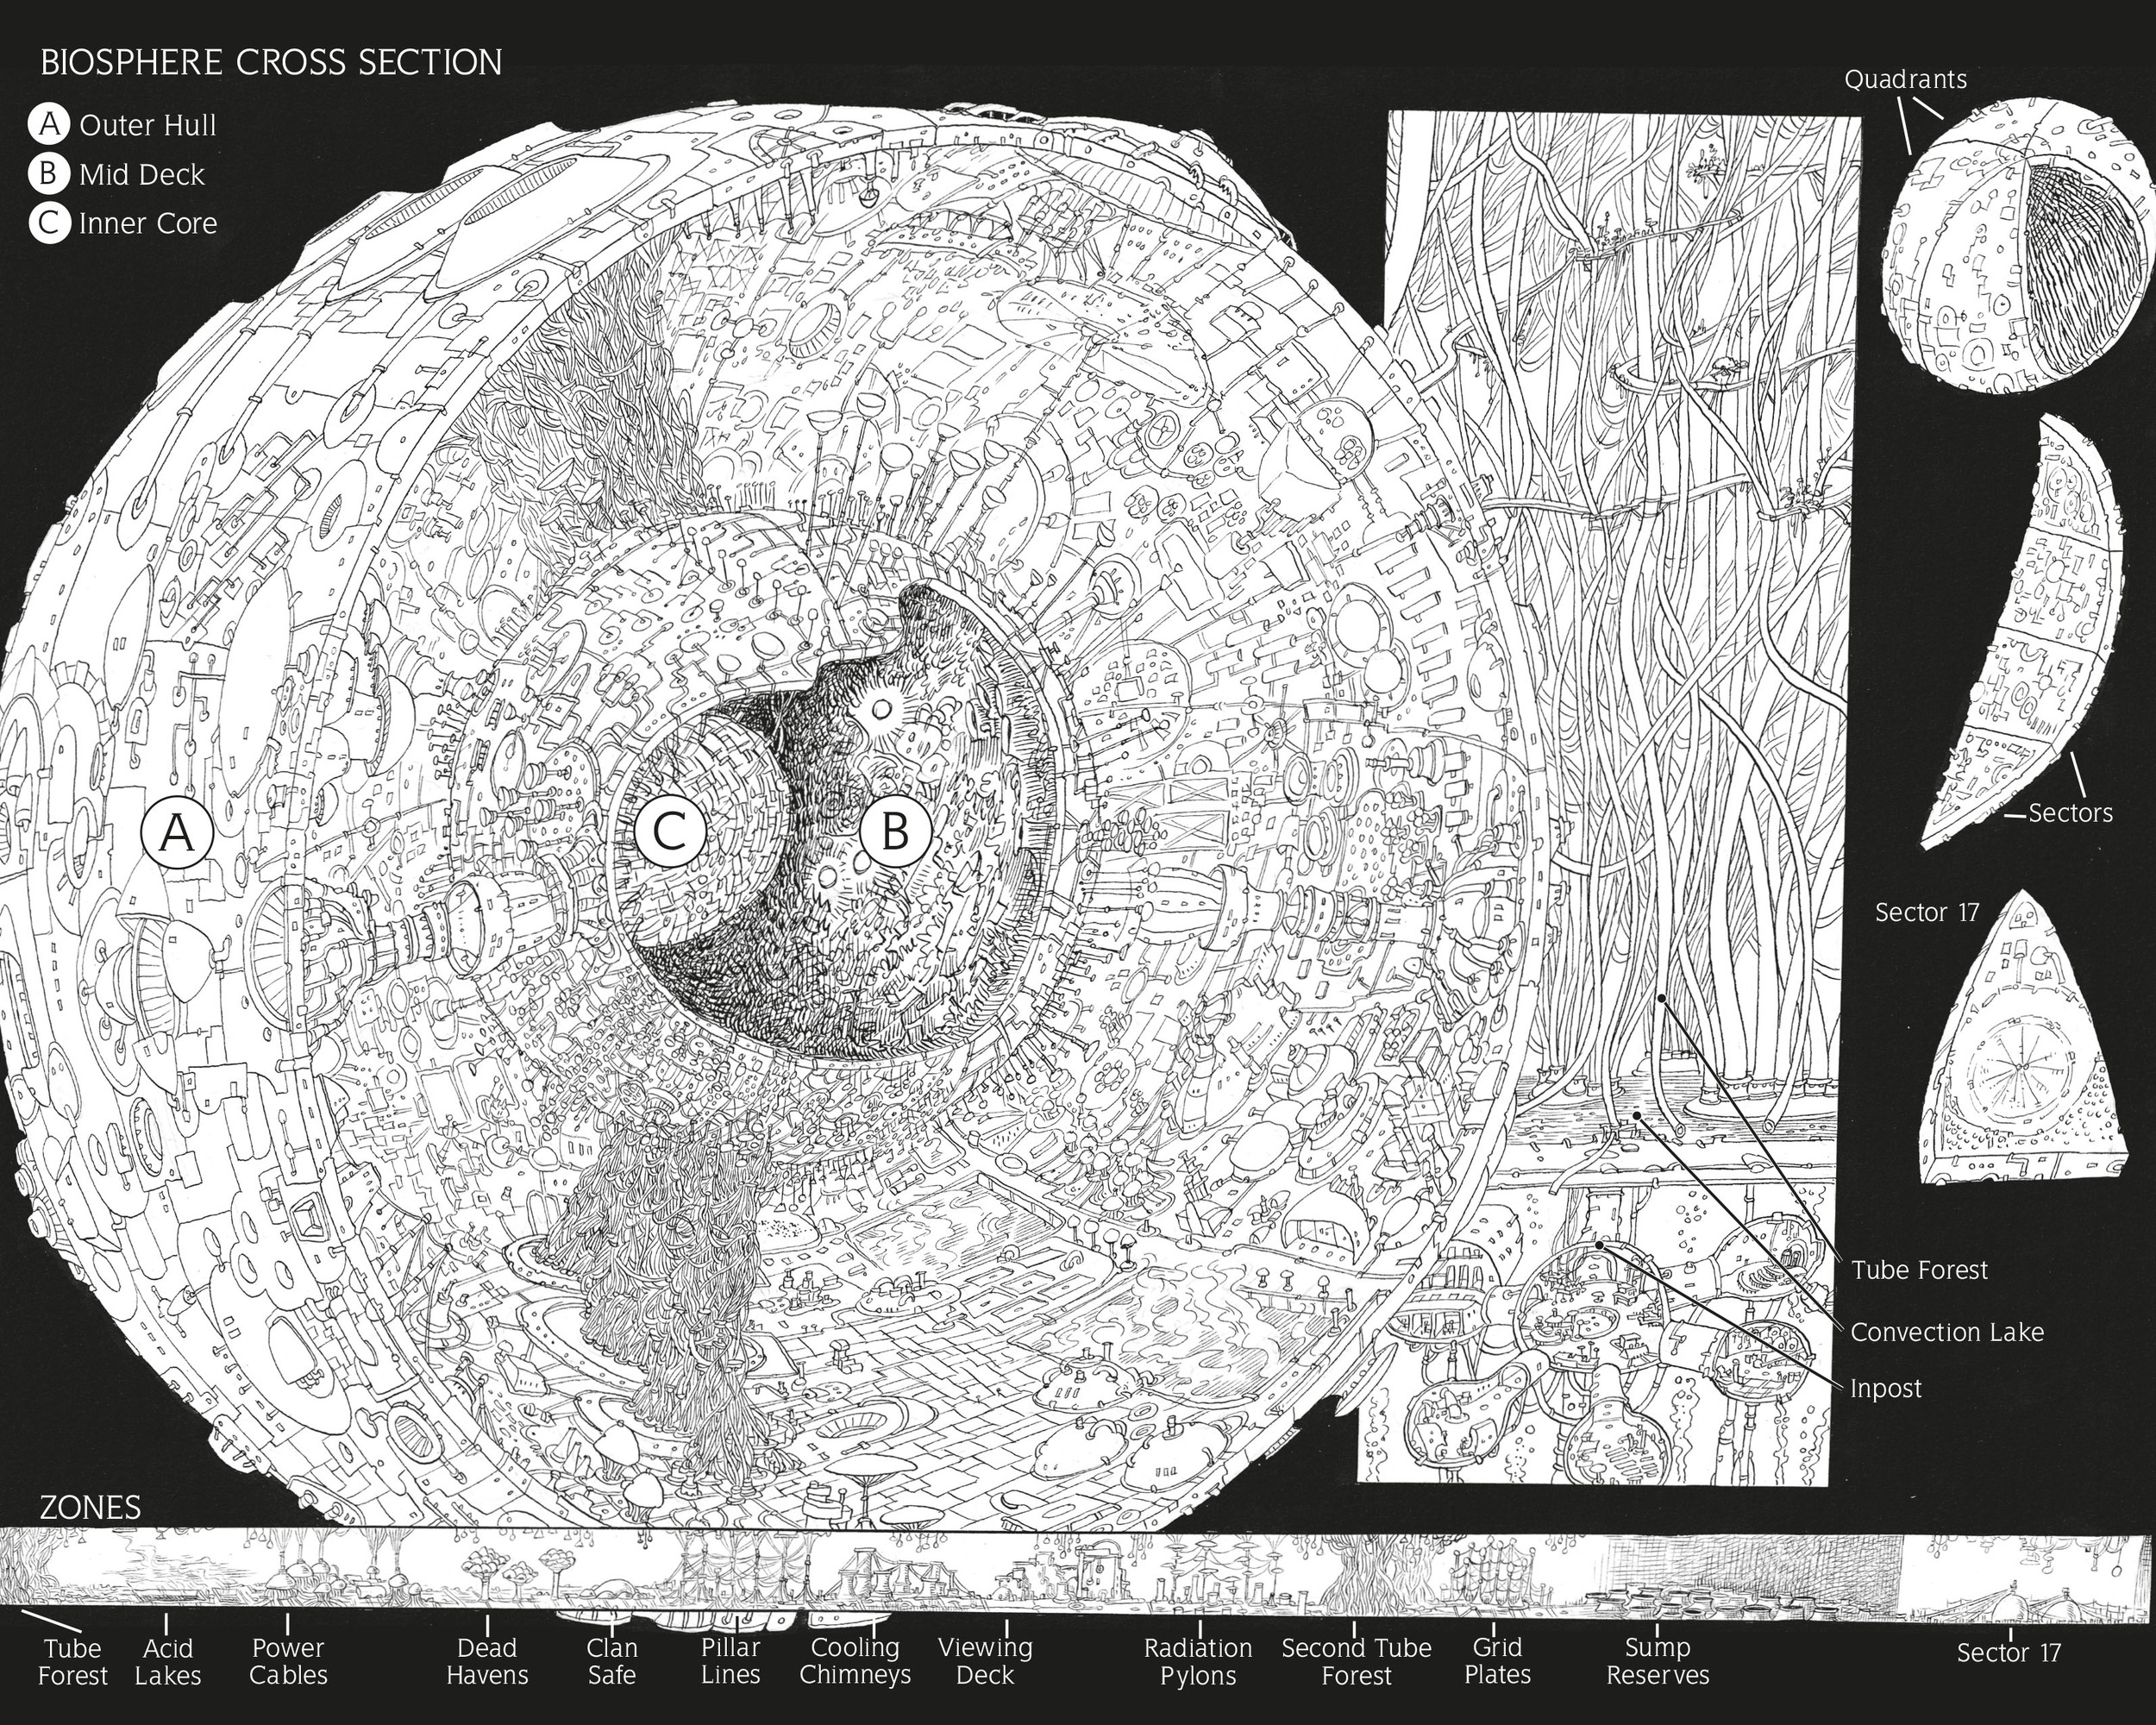 Cross section of the Biosphere © Chris Riddell 2014, taken from Scavenger: Zoid